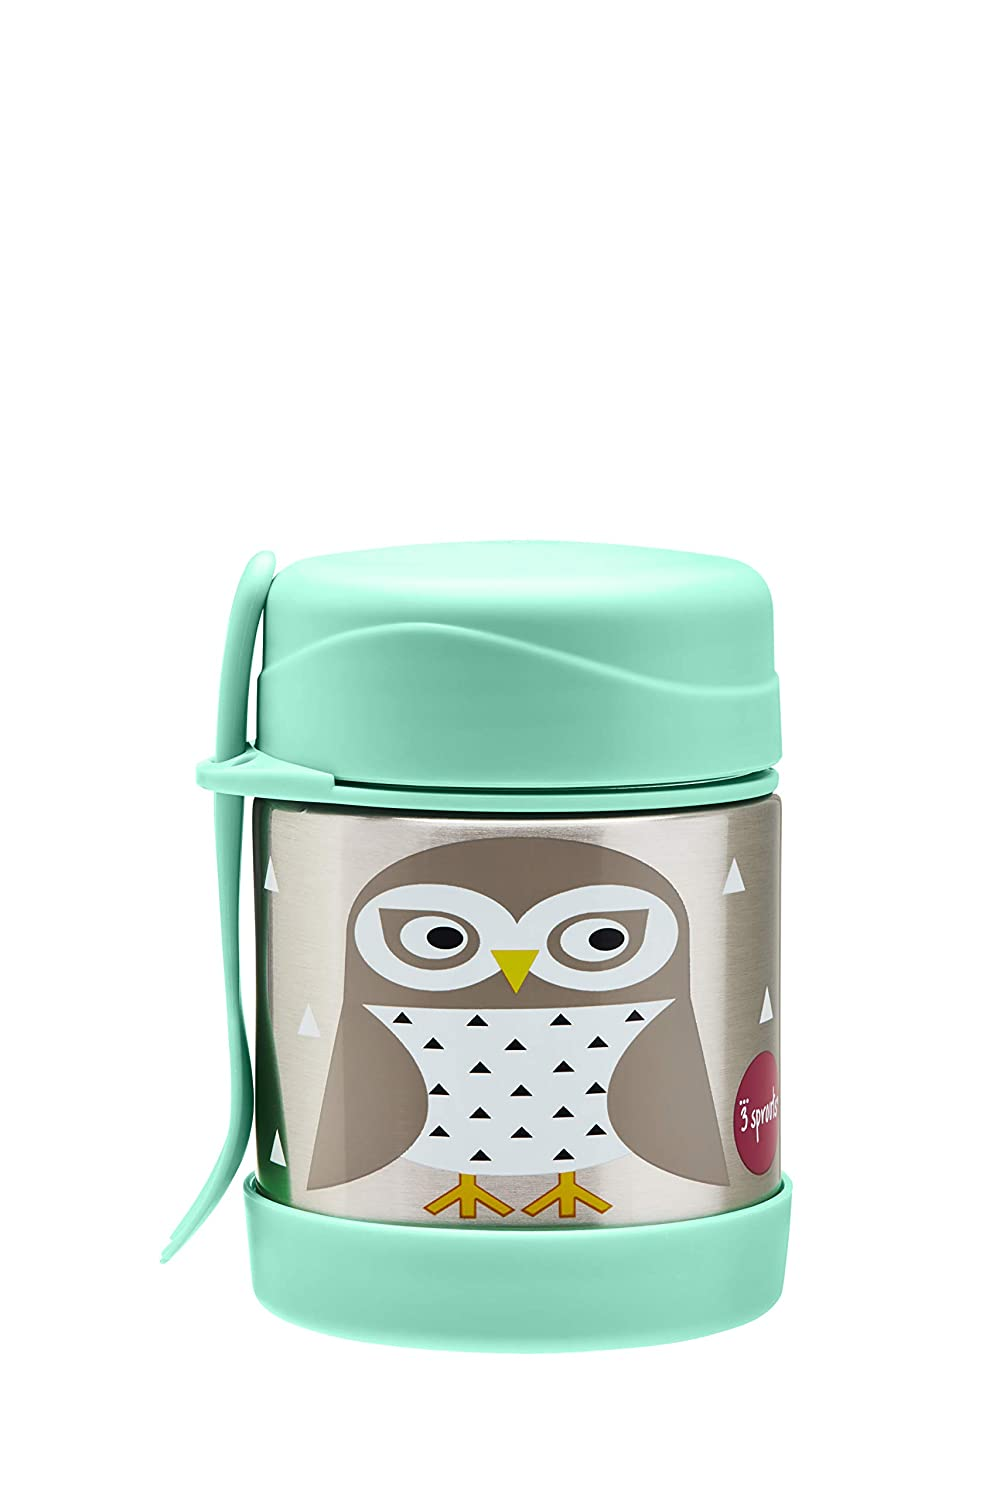 3 Sprouts Stainless Steel Food Jar and Spork for Kids, Owl